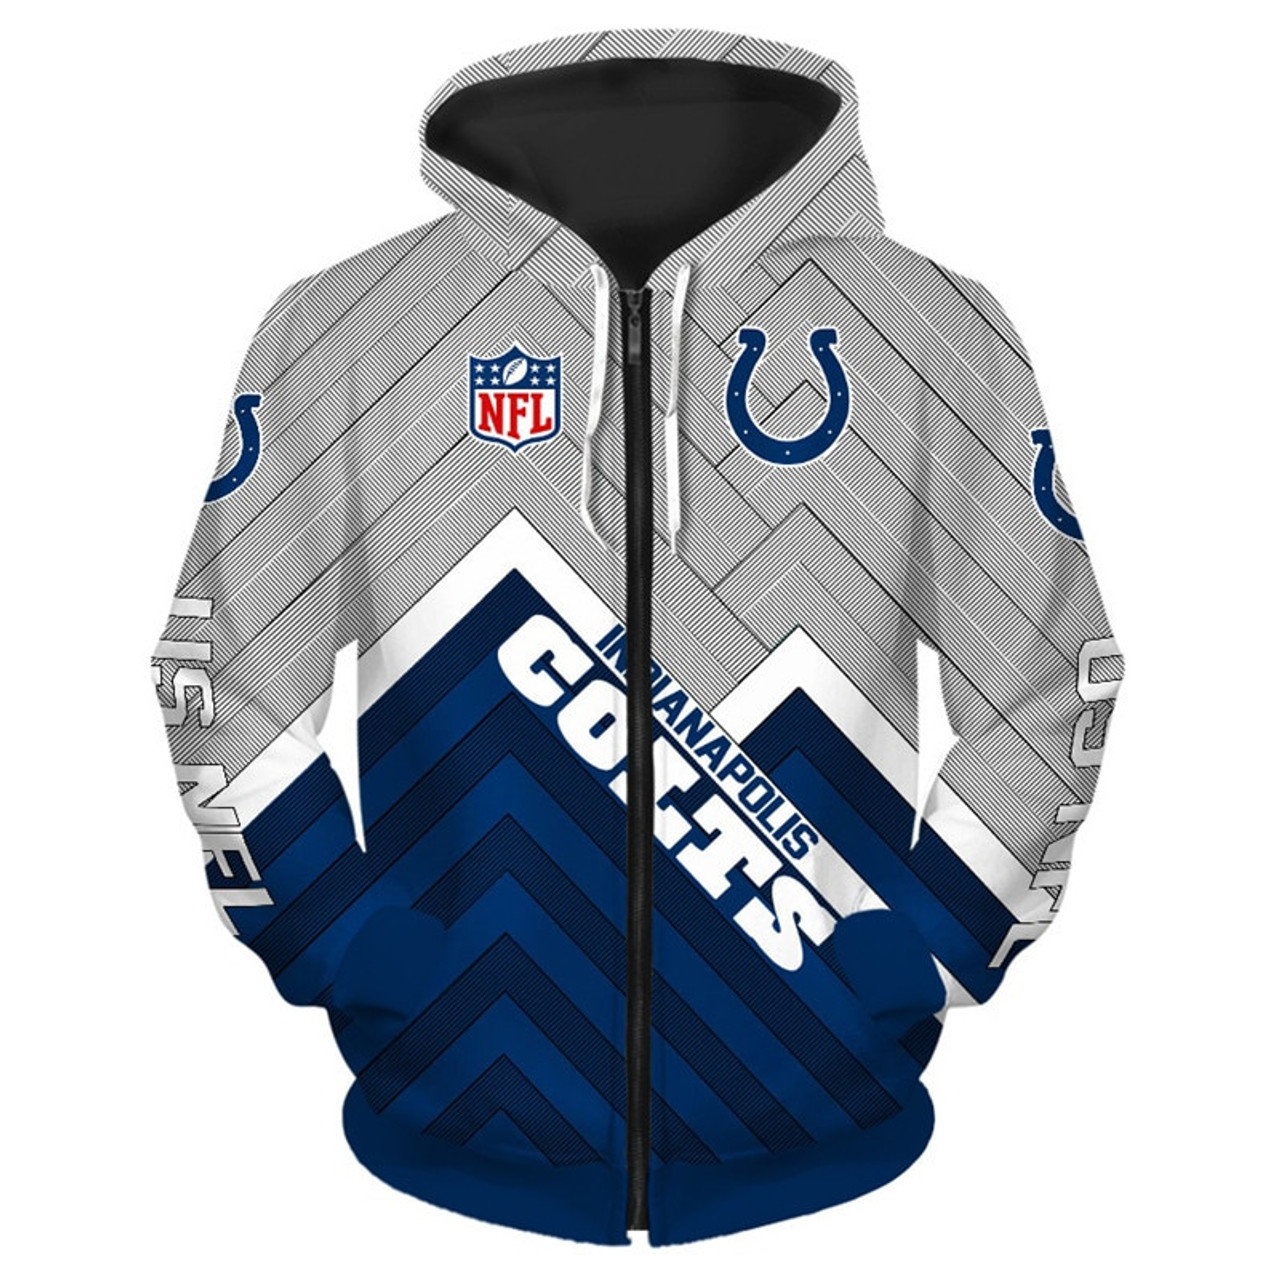 the best attitude 232fe b0c29 **(NEW-OFFICIAL-N.F.L.INDIANAPOLIS-COLTS-ZIPPERED-HOODIES/3D-CUSTOM-COLTS-LOGOS  & OFFICIAL-COLTS-TEAM-COLORS/NICE-3D-DETAILED-GRAPHIC-PRINTED-DOUBLE-S...